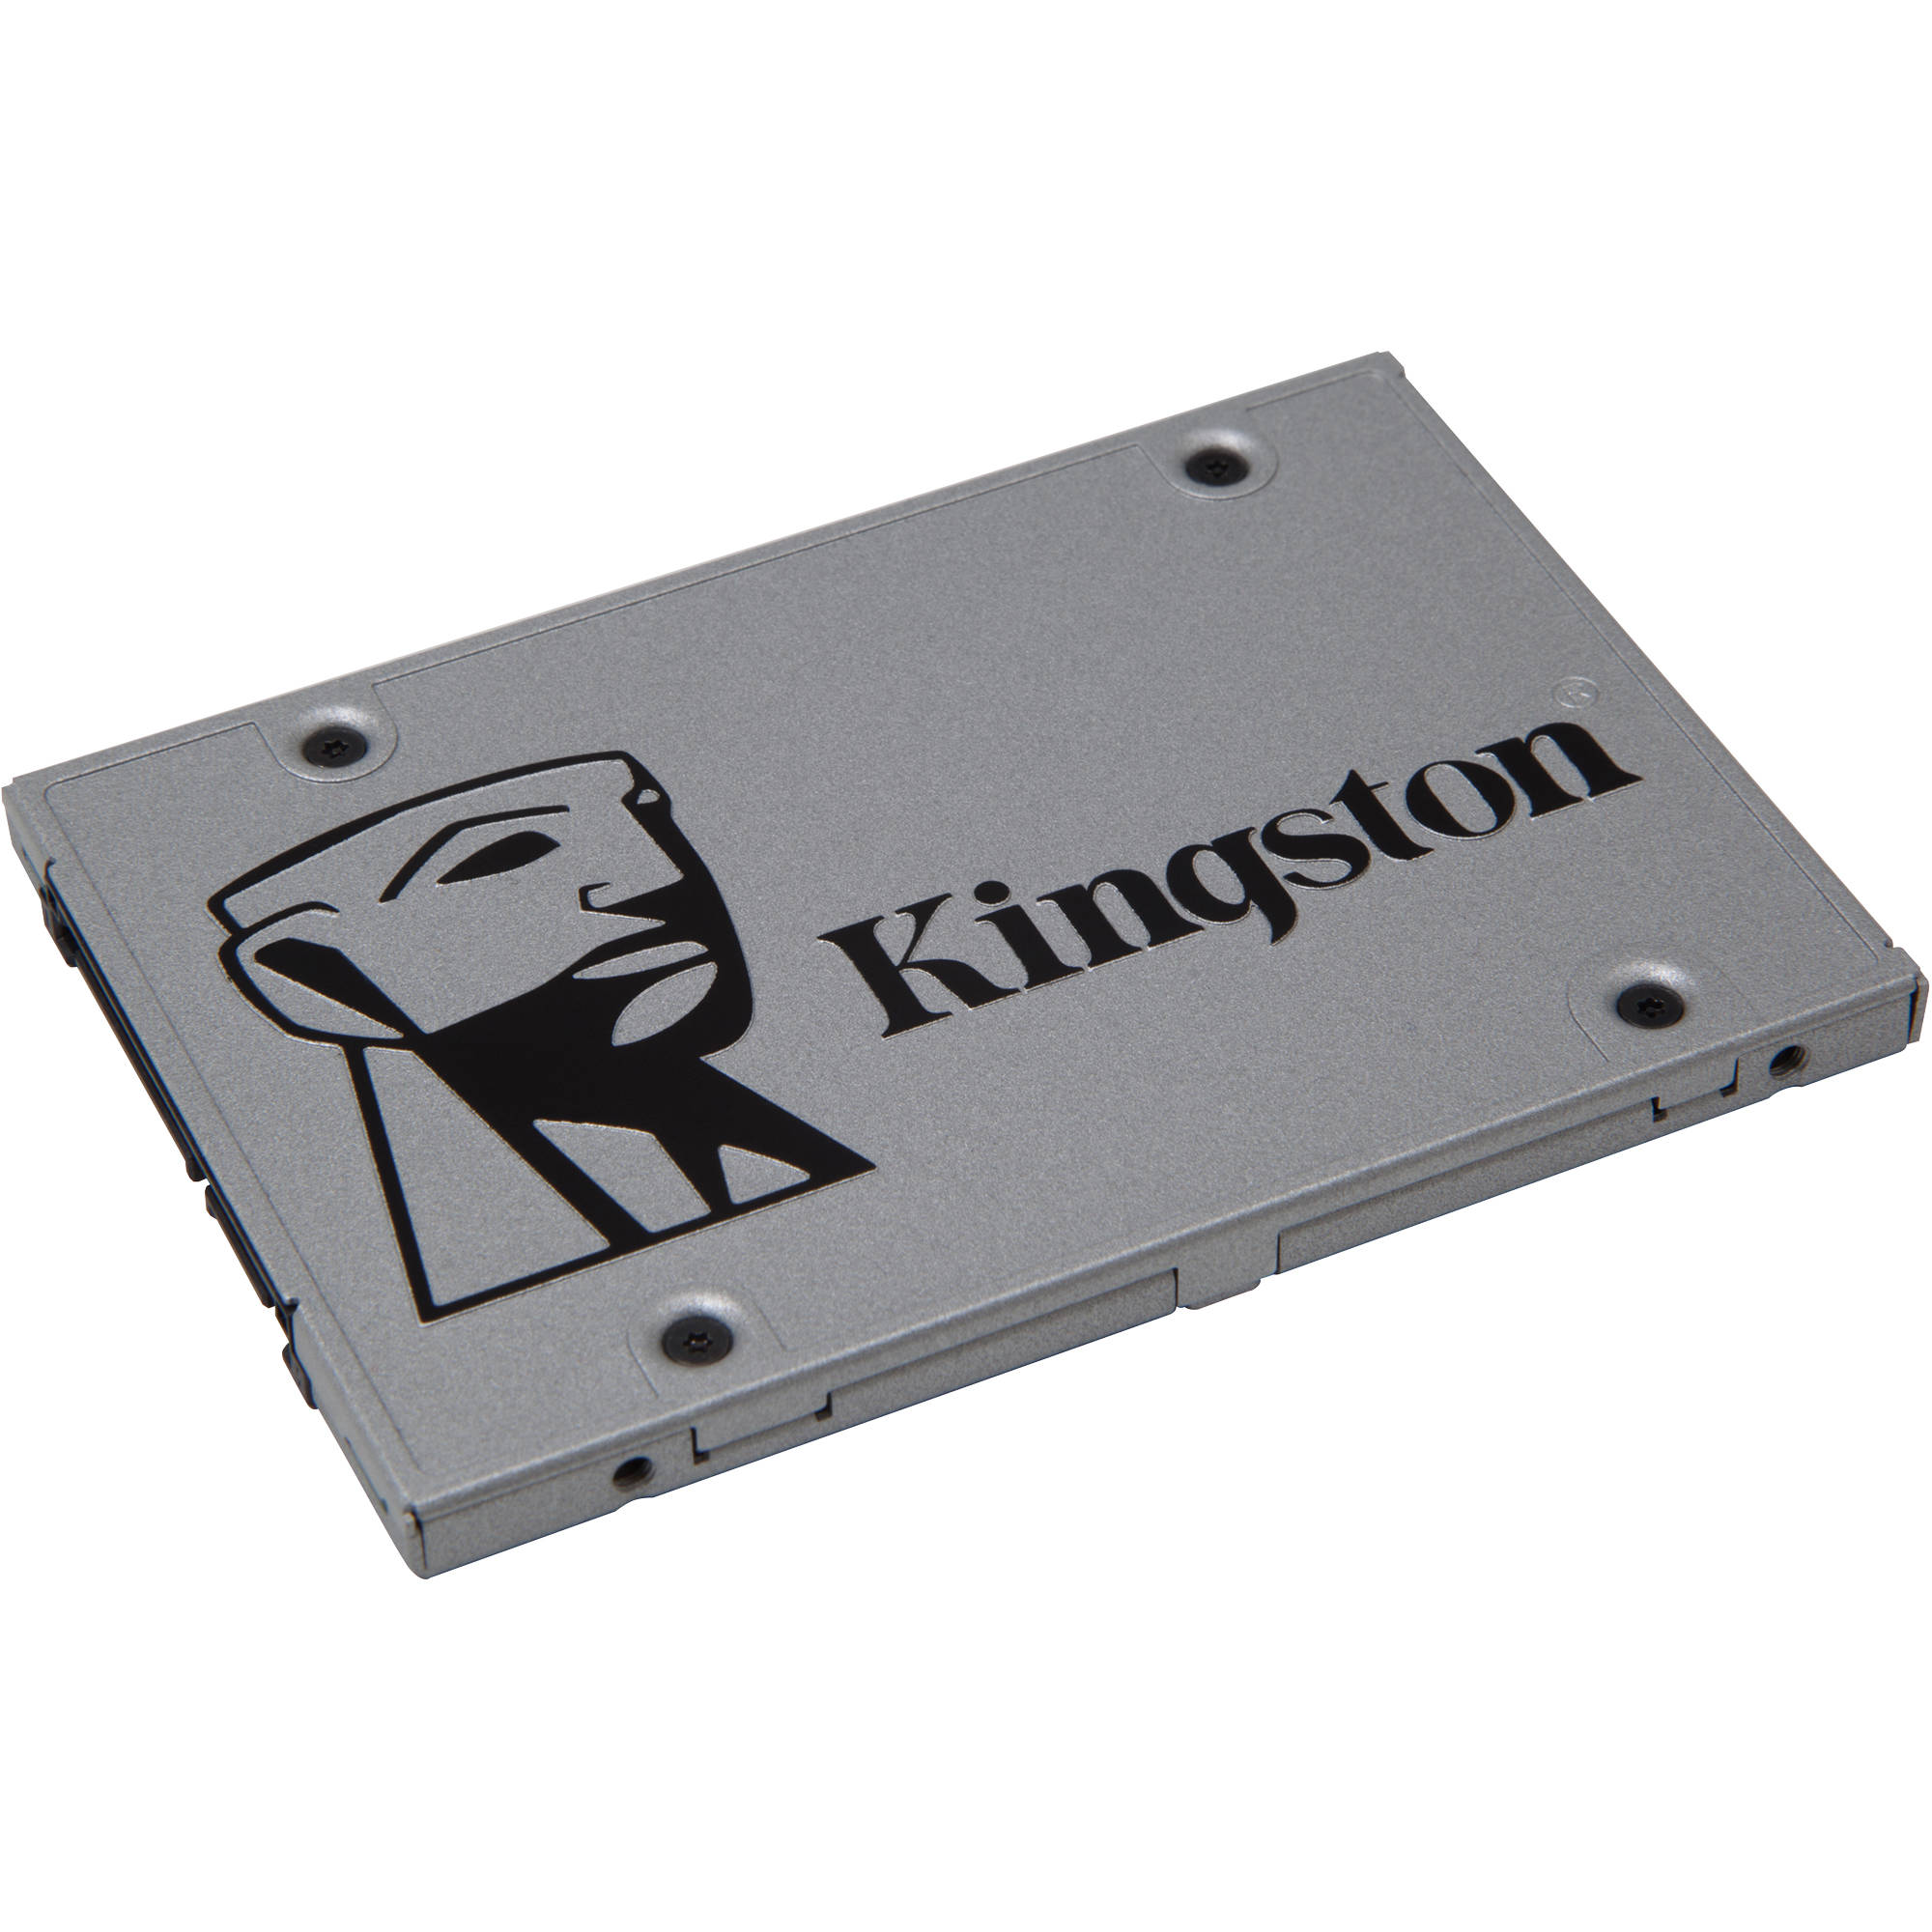 Kingston SSD /  SUV400S37/ 480GB - 2.5